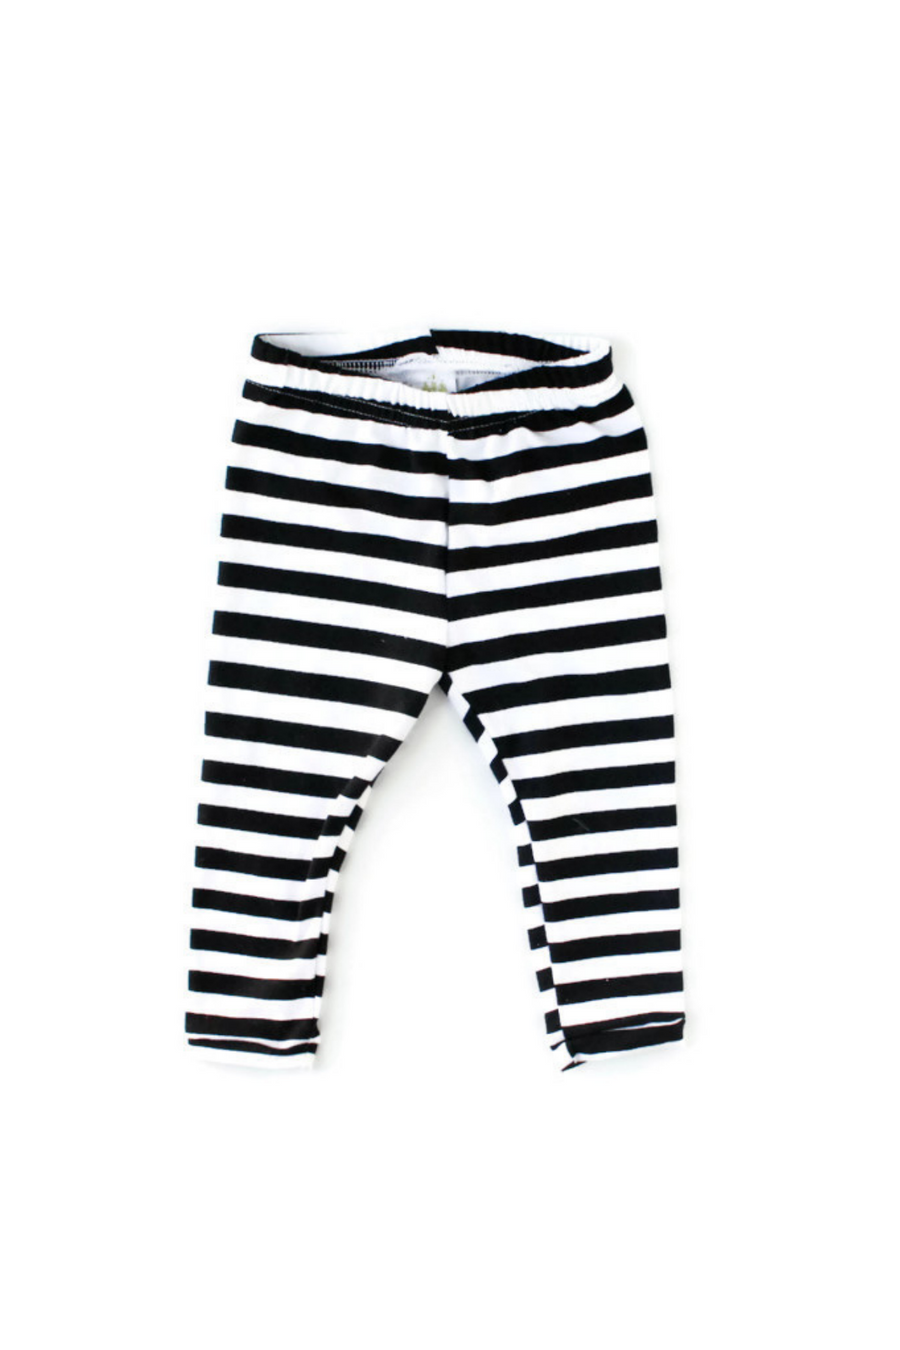 black and white stripes leggings for girls